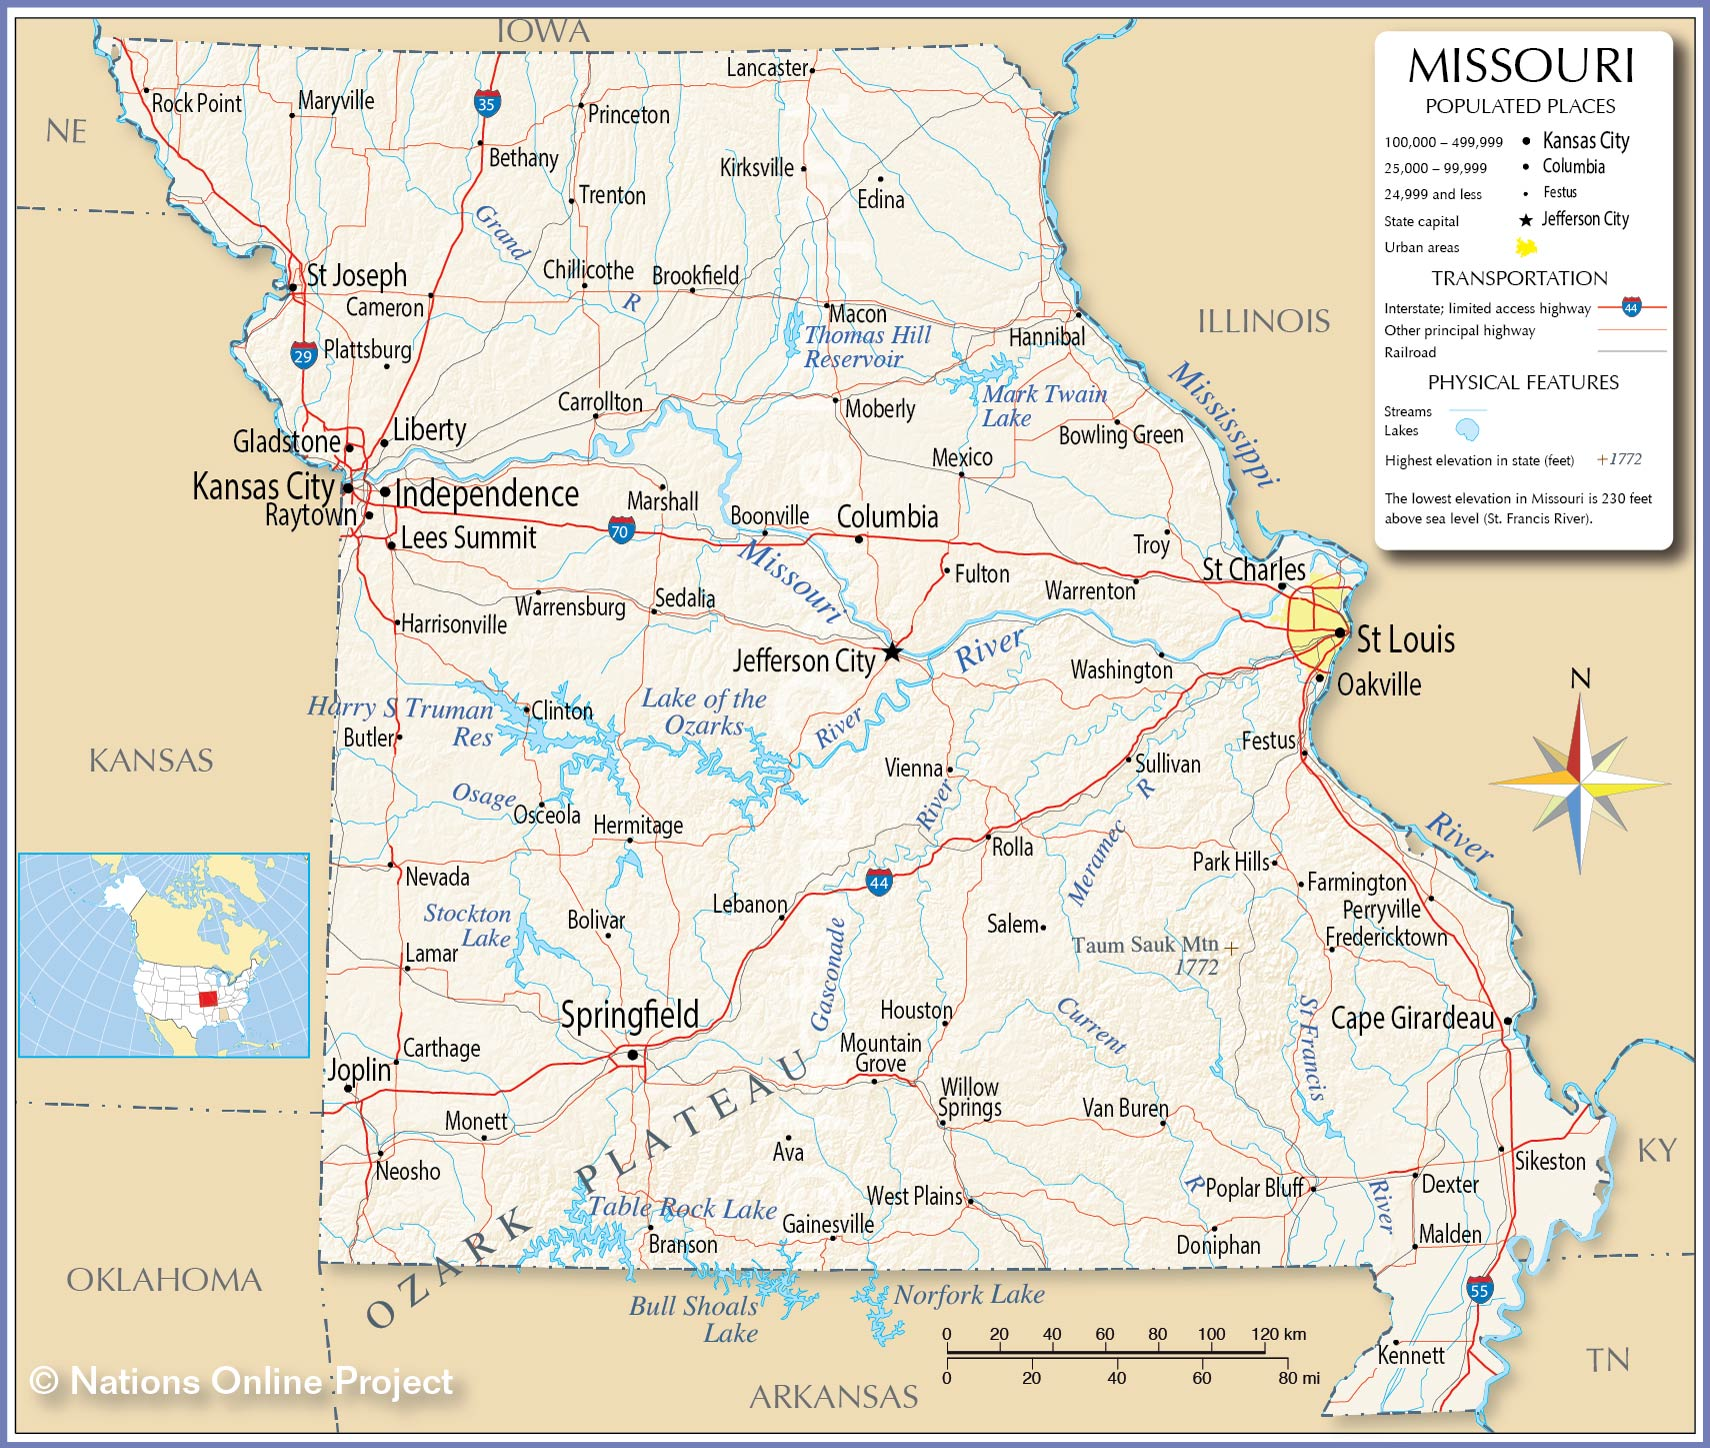 Reference Map Of Missouri USA Nations Online Project - Missouri on map of usa